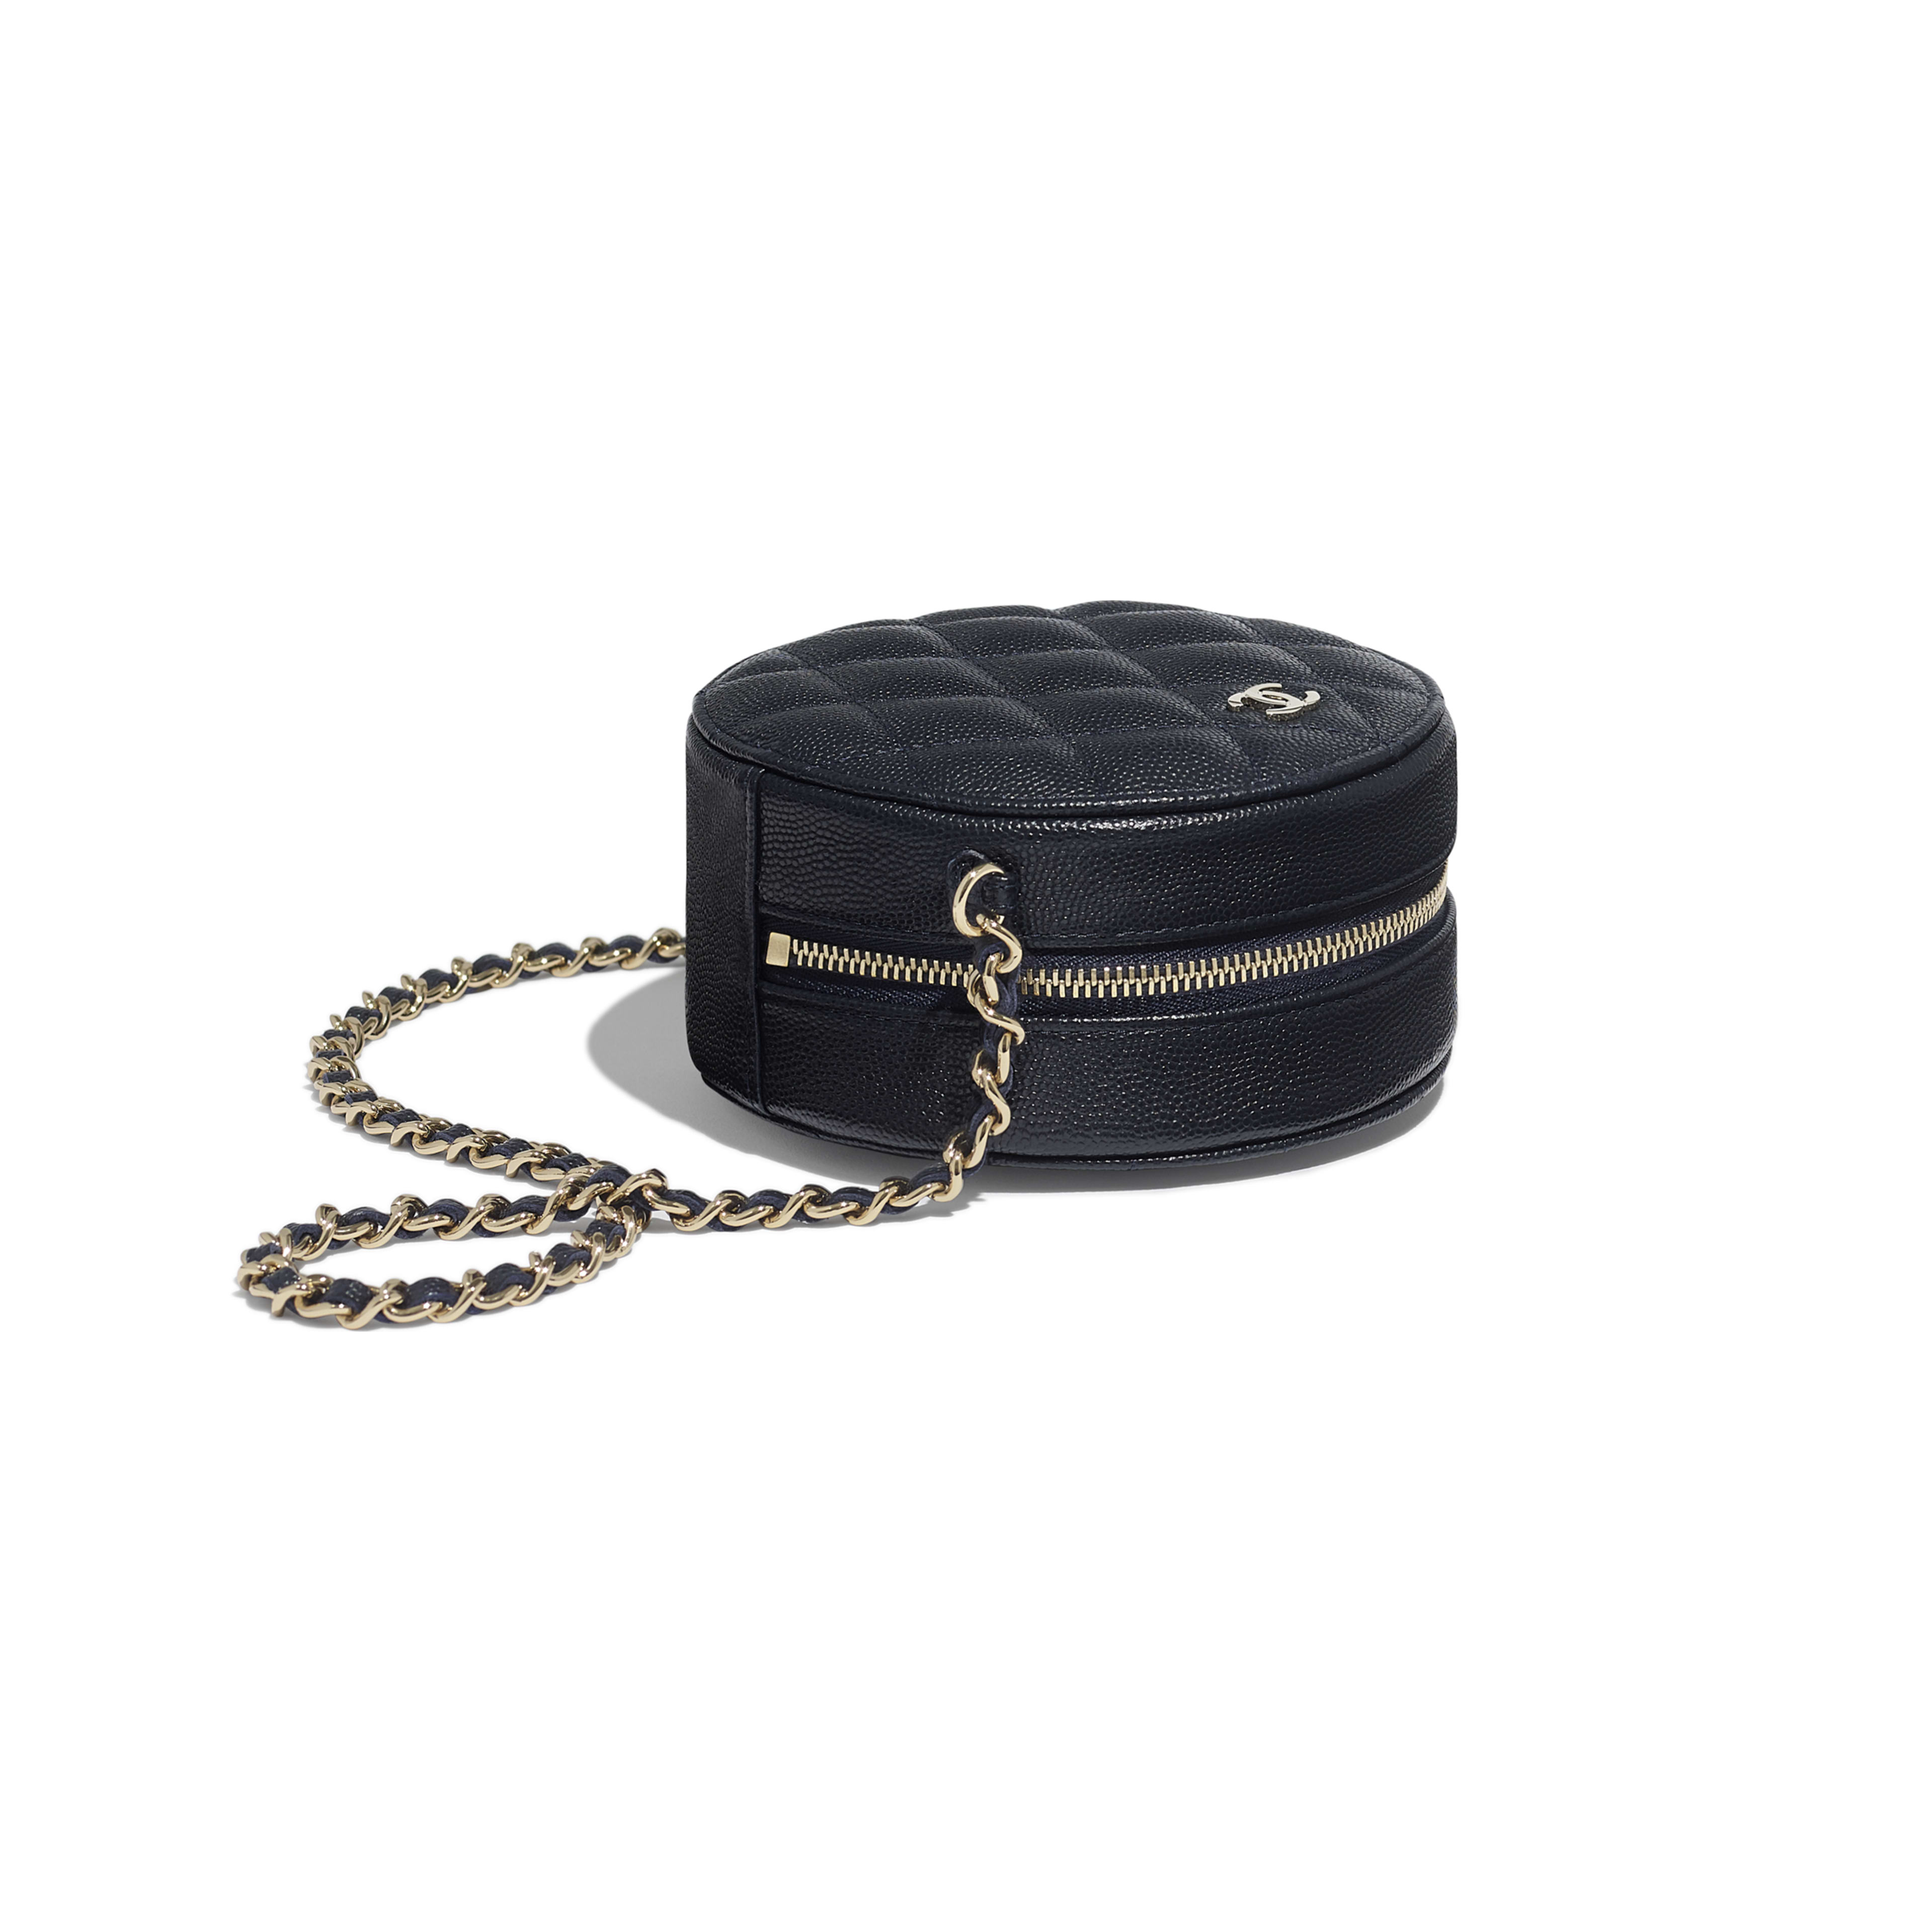 Classic Clutch With Chain - Navy Blue - Grained Calfskin & Gold-Tone Metal - Extra view - see full sized version